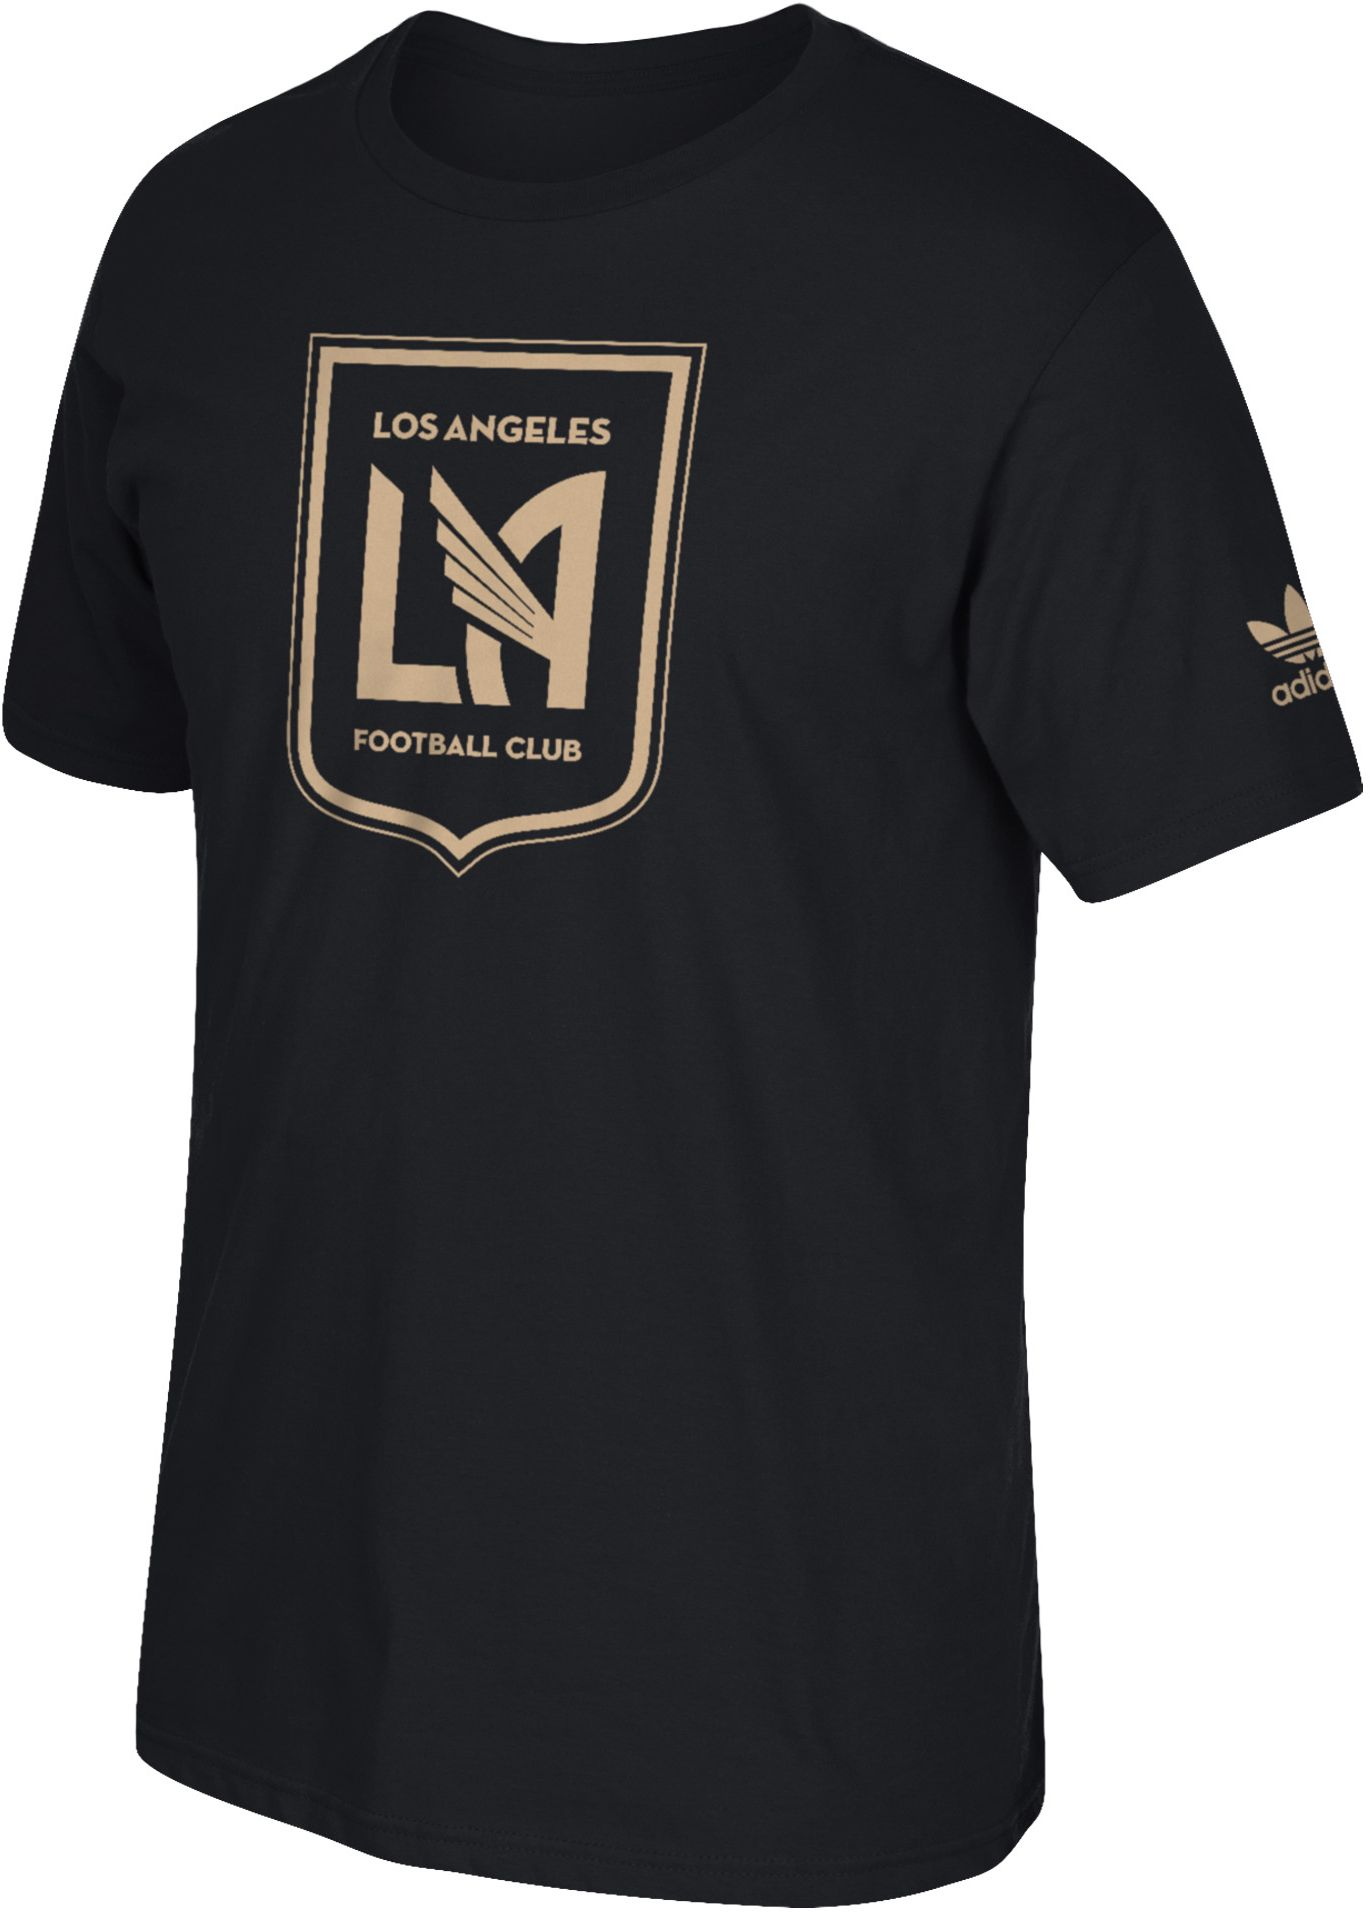 adidas Men's Los Angeles FC Logo Black T-Shirt| DICK'S Sporting Goods